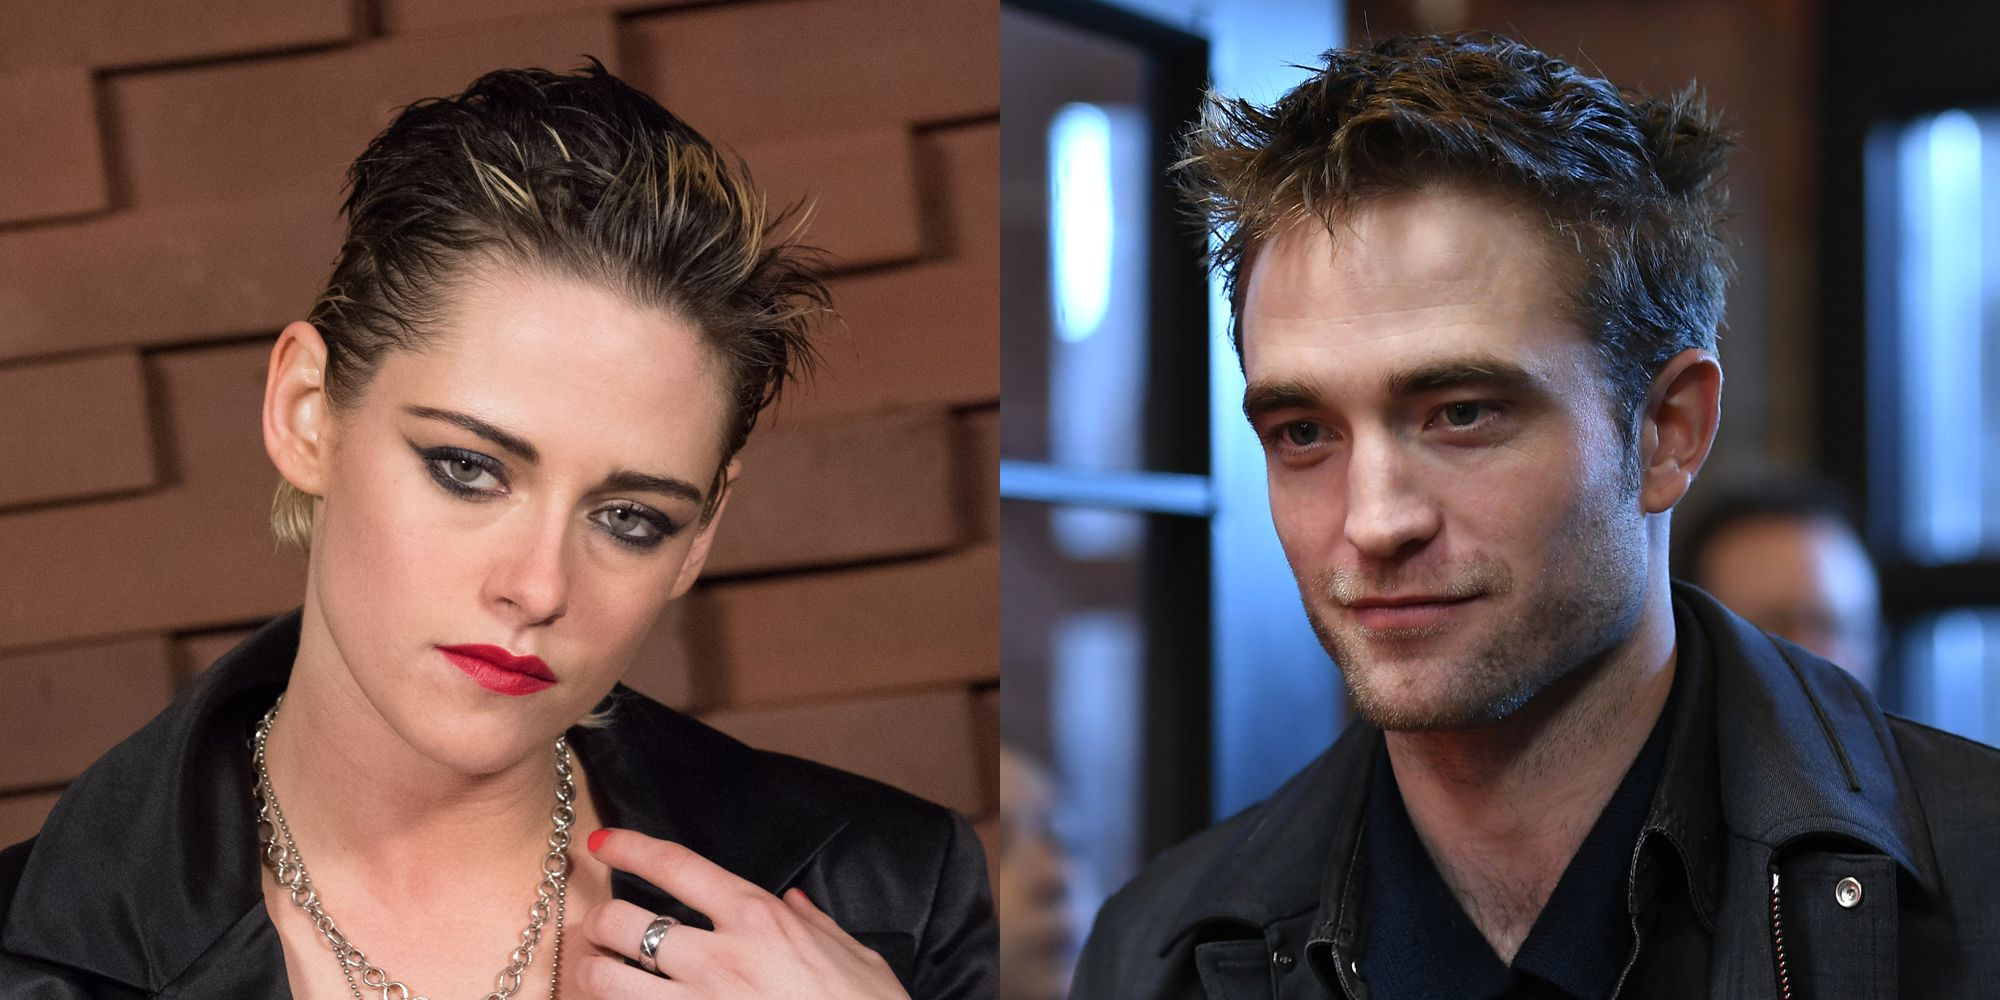 """kristen-stewart-grateful-shes-still-friends-with-robert-pattinson-the-exes-keep-in-touch"""